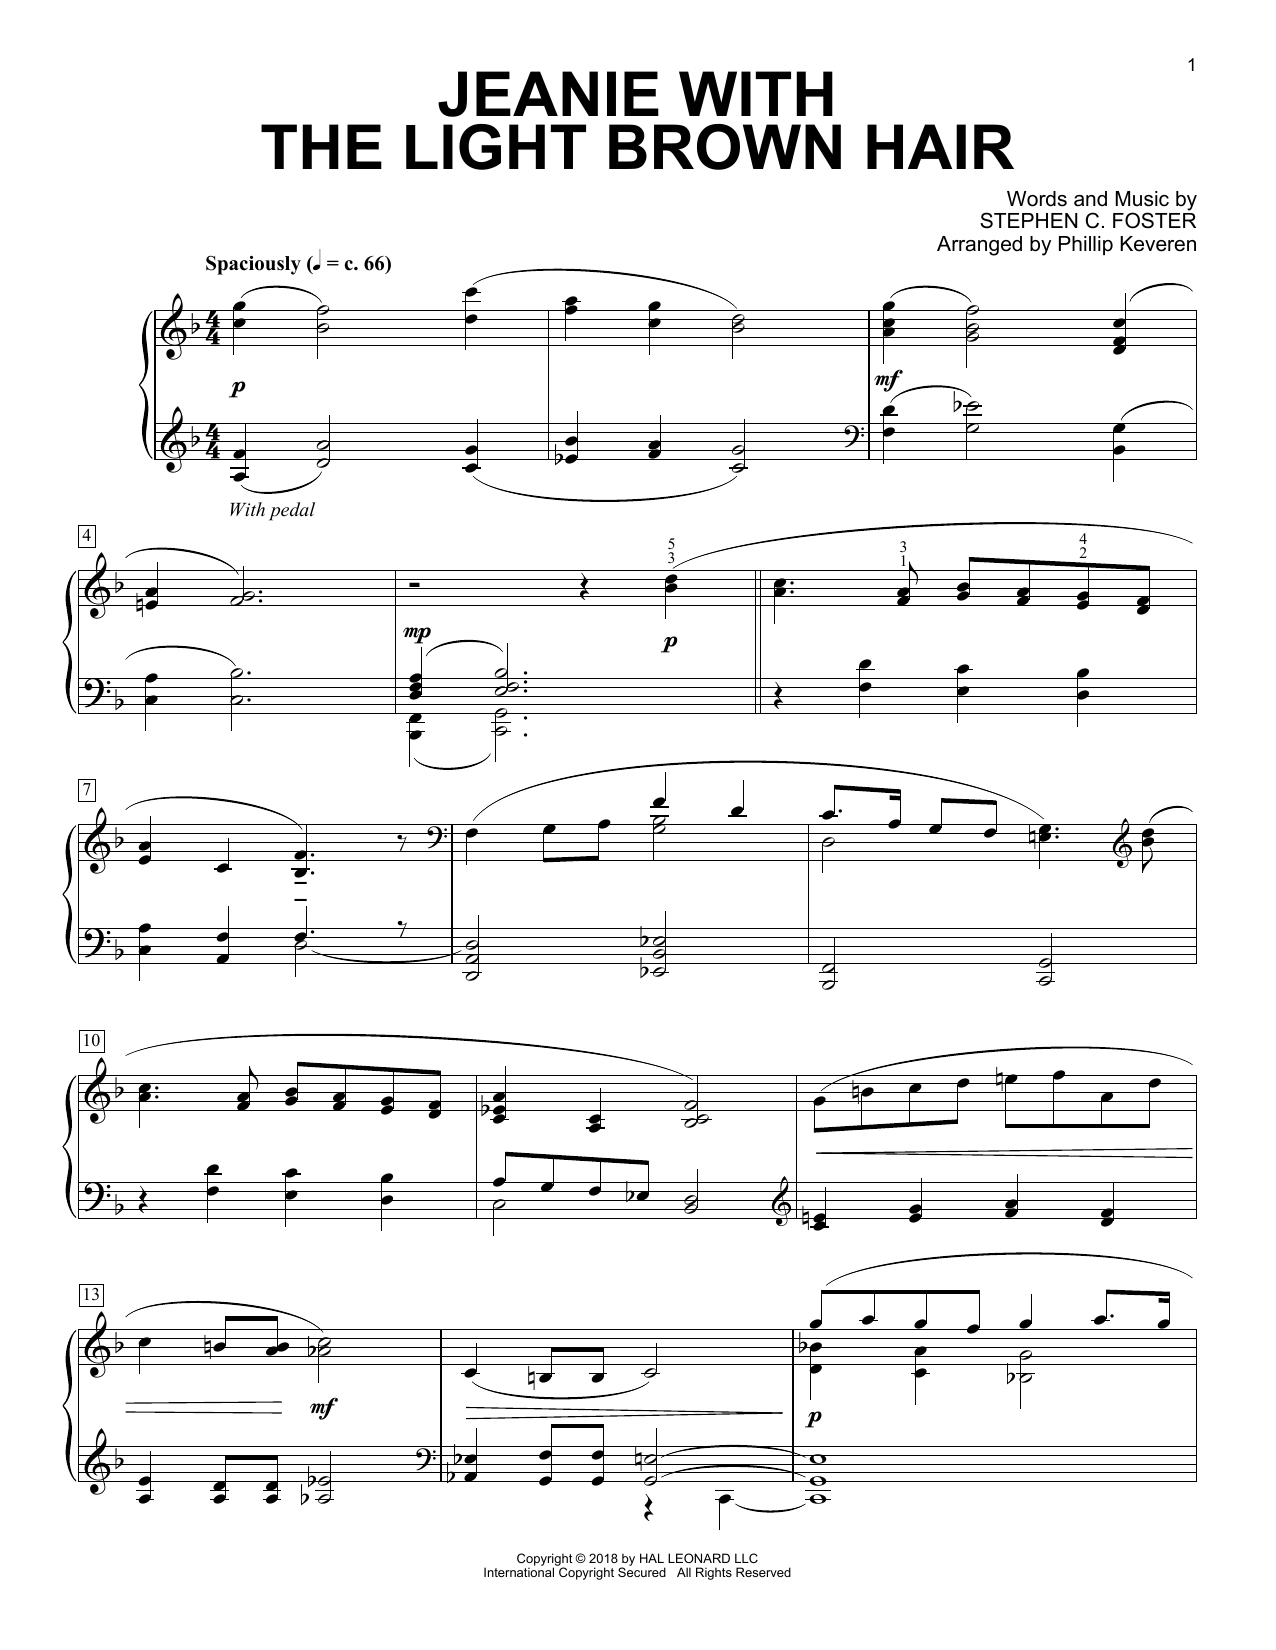 Stephen C. Foster Jeanie With The Light Brown Hair [Classical version] (arr. Phillip Keveren) sheet music notes and chords. Download Printable PDF.